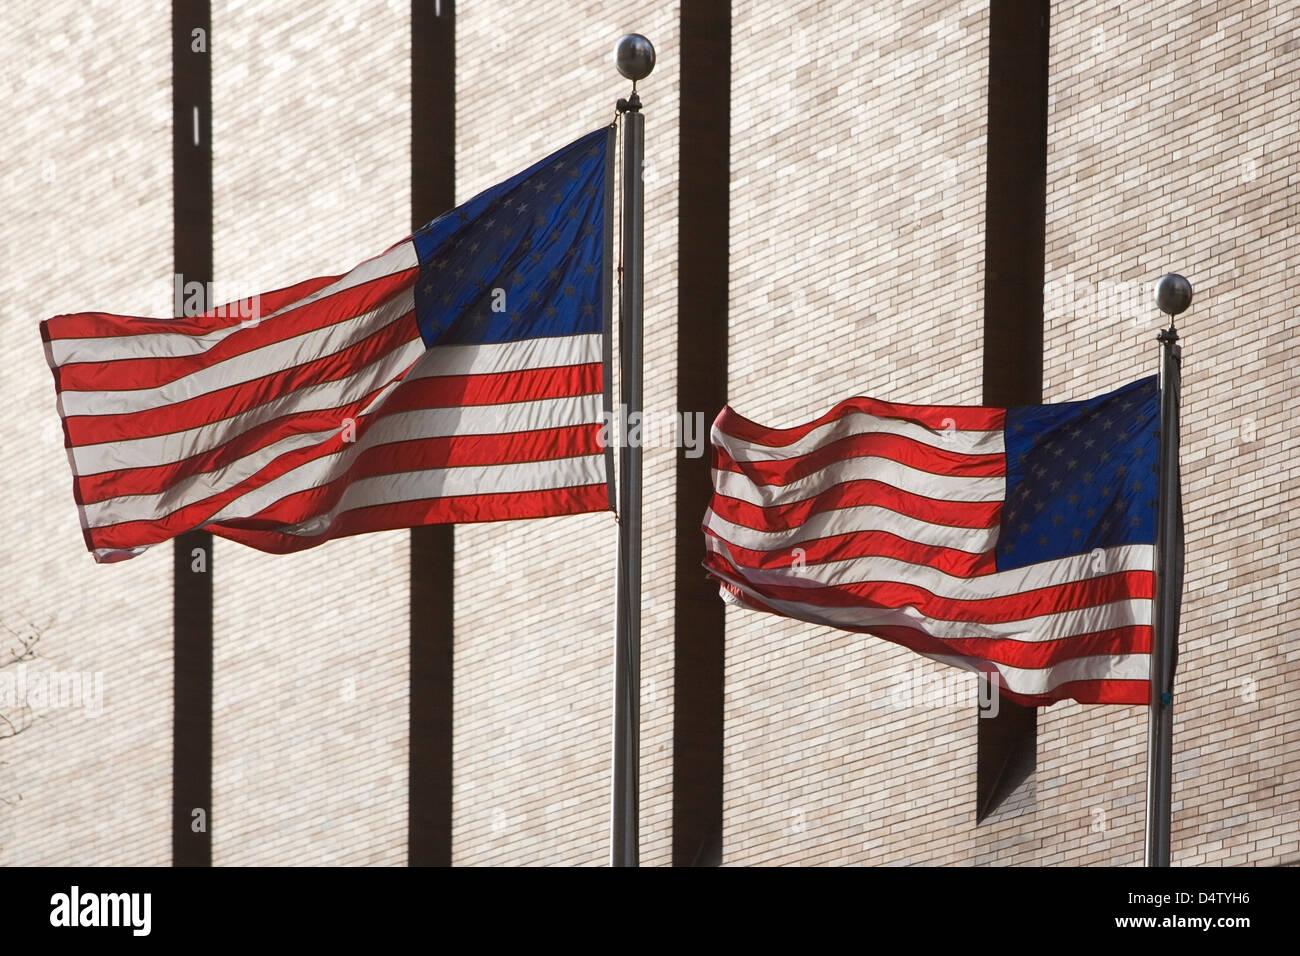 American flags flying by skyscraper - Stock Image